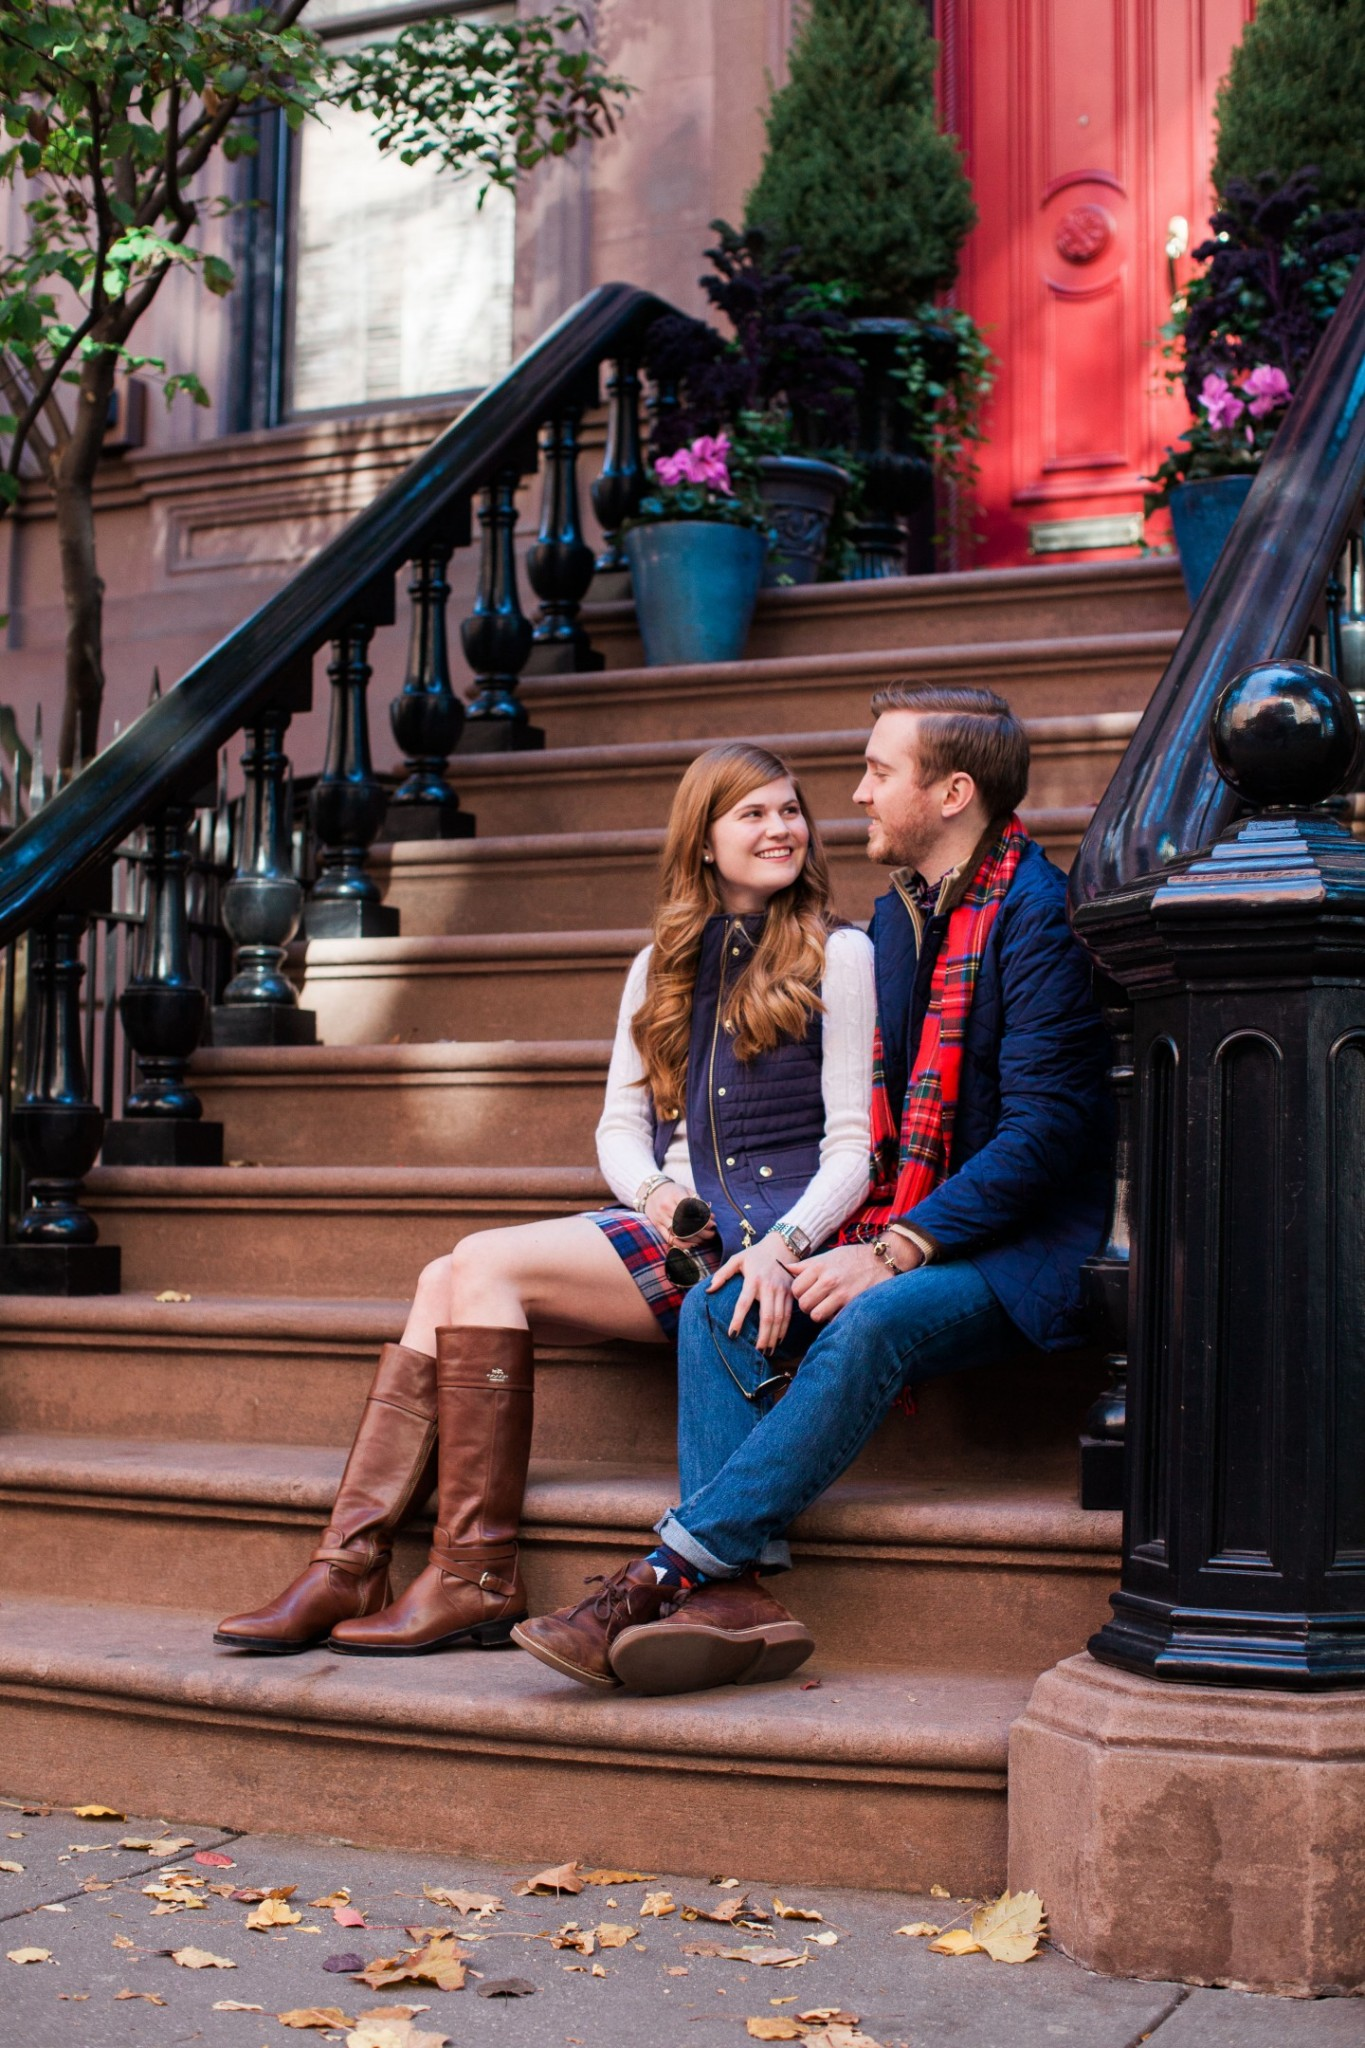 Lifestyle blogger Mollie Sheperdson shares a his and hers Vineyard Vines holiday look| His & Hers Matchy Holiday Outfits featured by top London fashion blogger, Mollie Moore: couple standing in front of a NYC entrance door wearing plaid accent pieces: a plaid scarf for him and plaid skirt for her